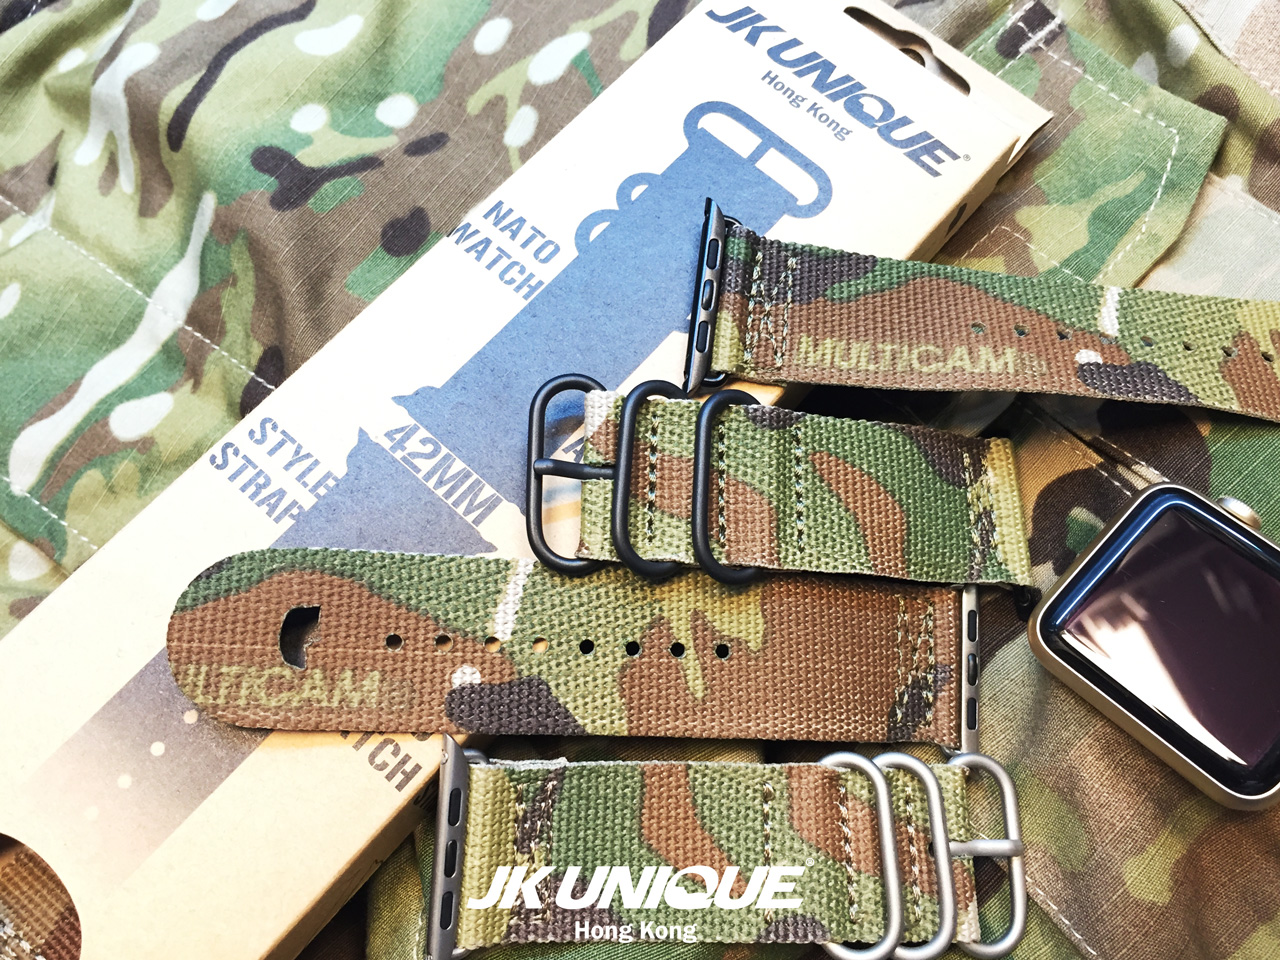 JK-UNIQUE-CAMO-NATO-Style-Apple-Watch-Strap-42mm-26-(1280).jpg